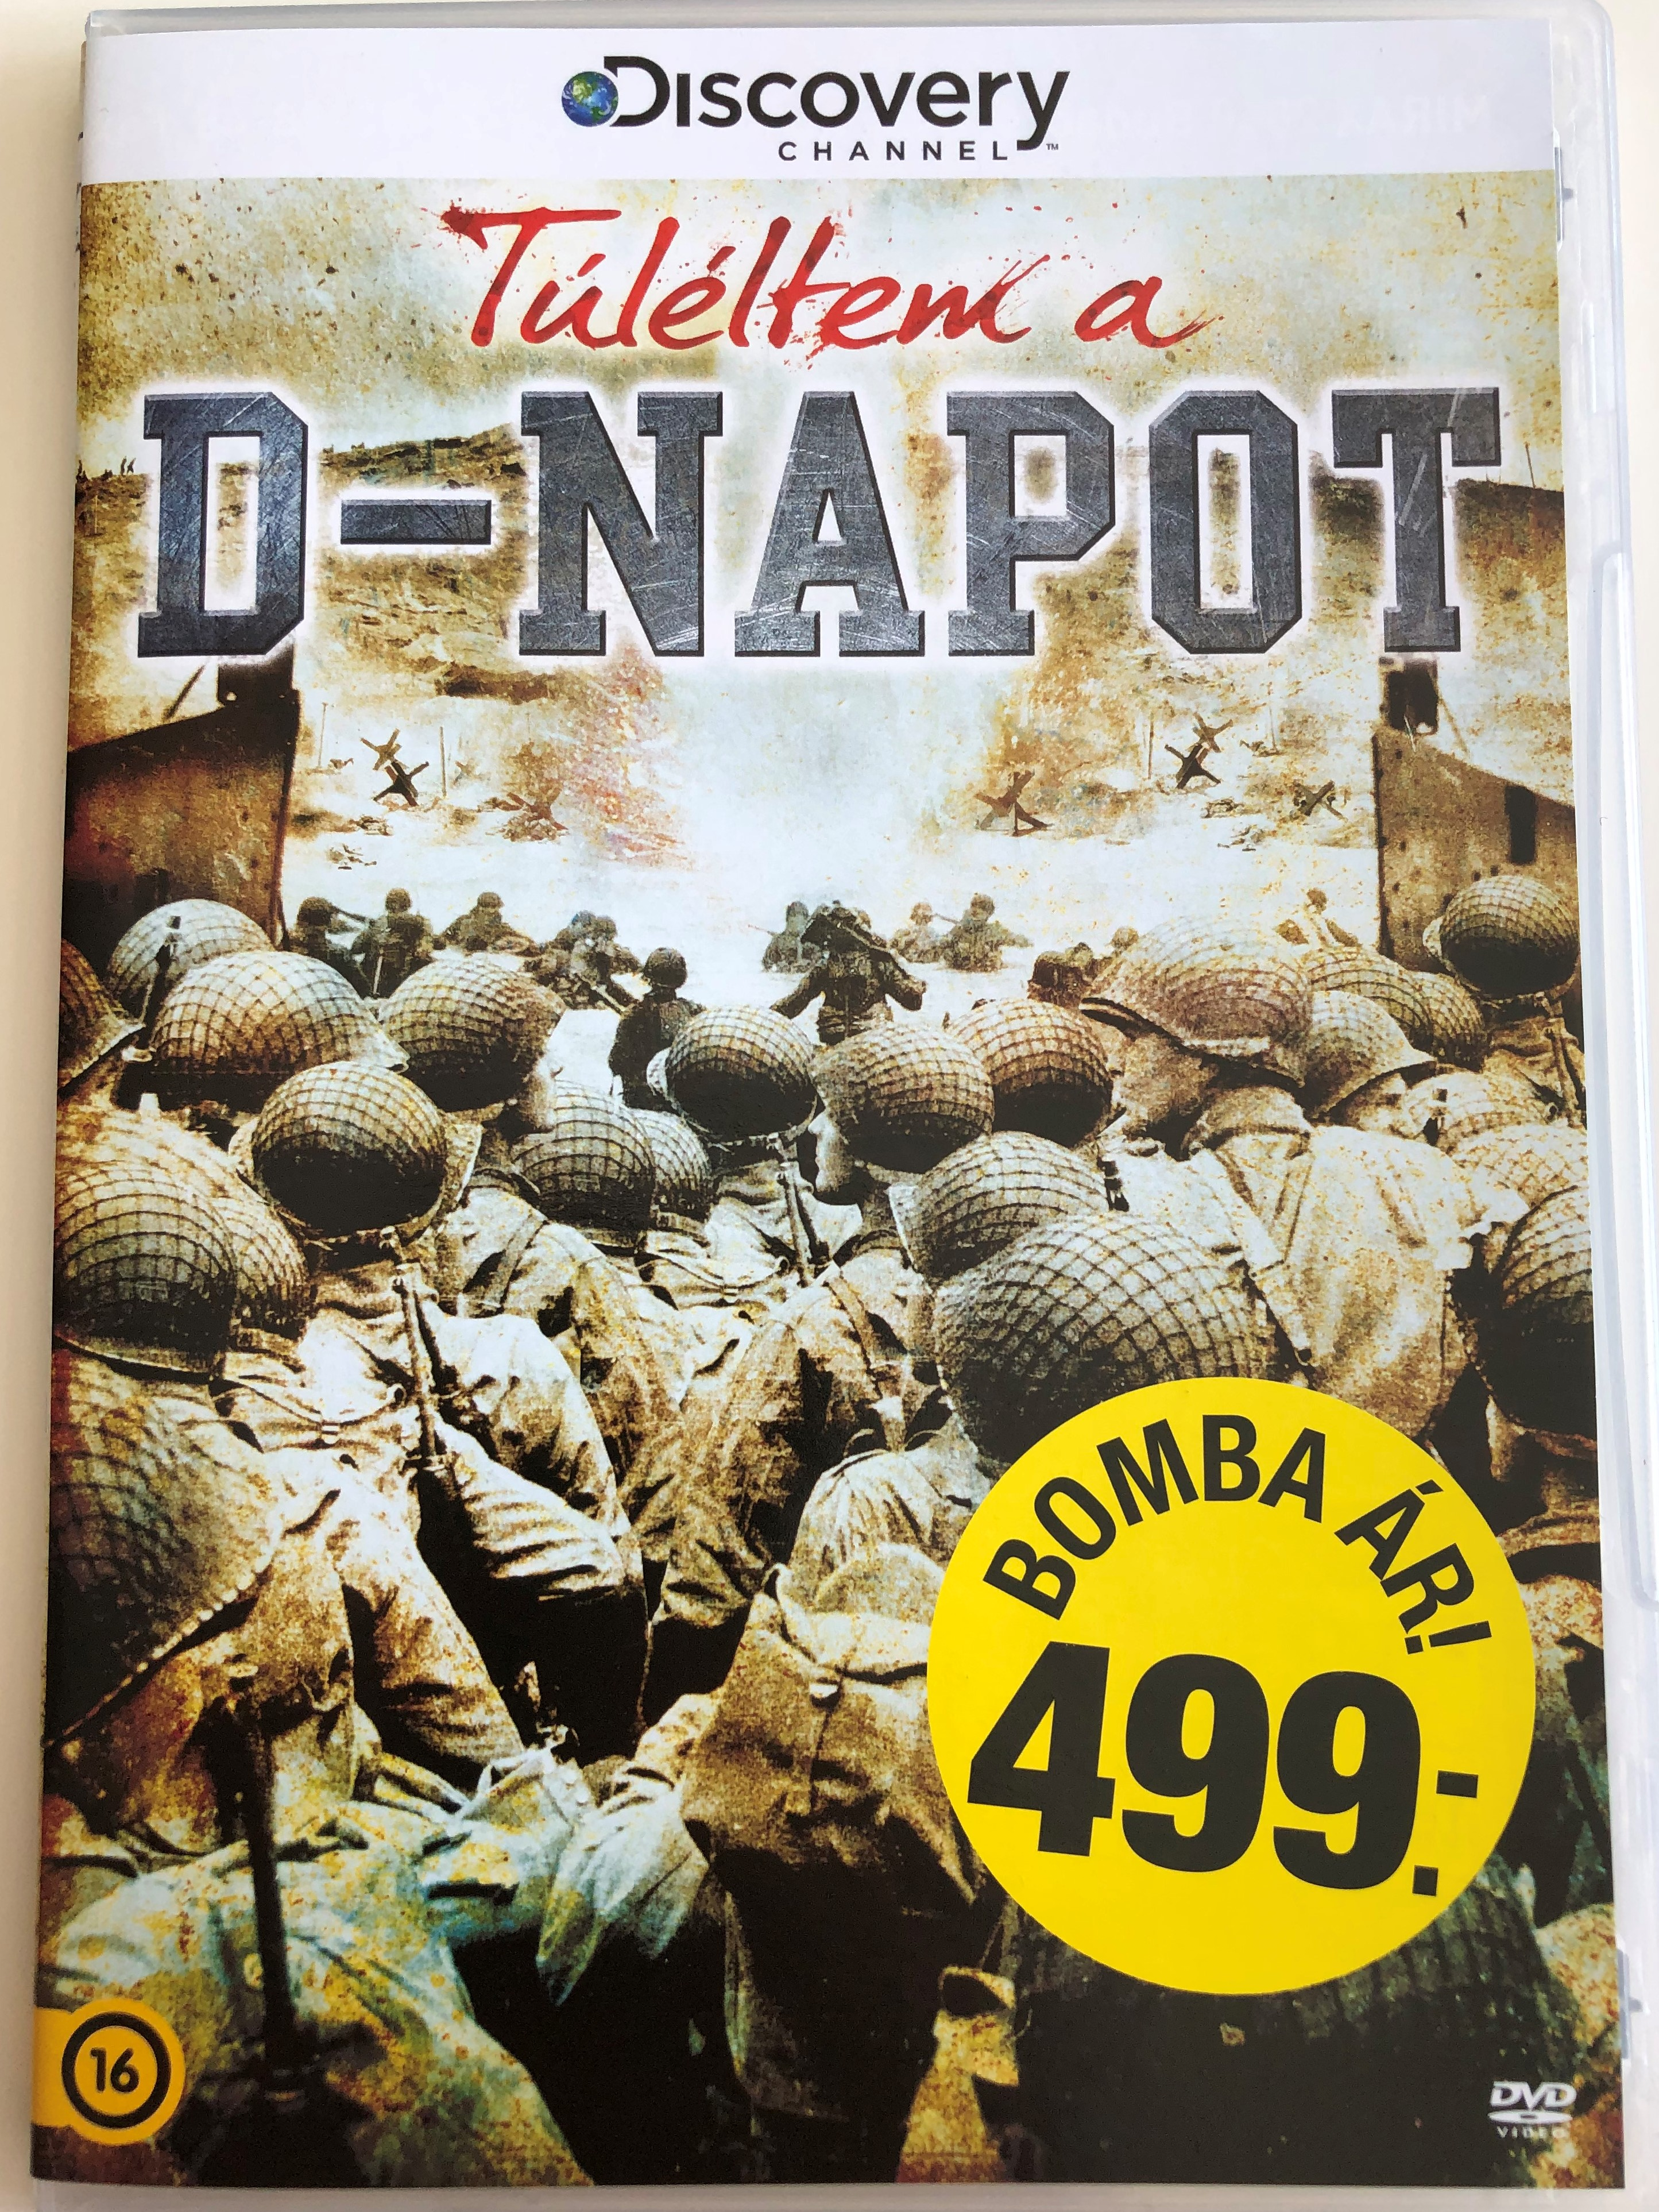 surviving-d-day-dvd-2011-t-l-ltem-a-d-napot-directed-by-richard-dale-alan-eyres-documentary-about-d-day-the-beginning-of-the-battle-of-normandy-discovery-channel-1-.jpg